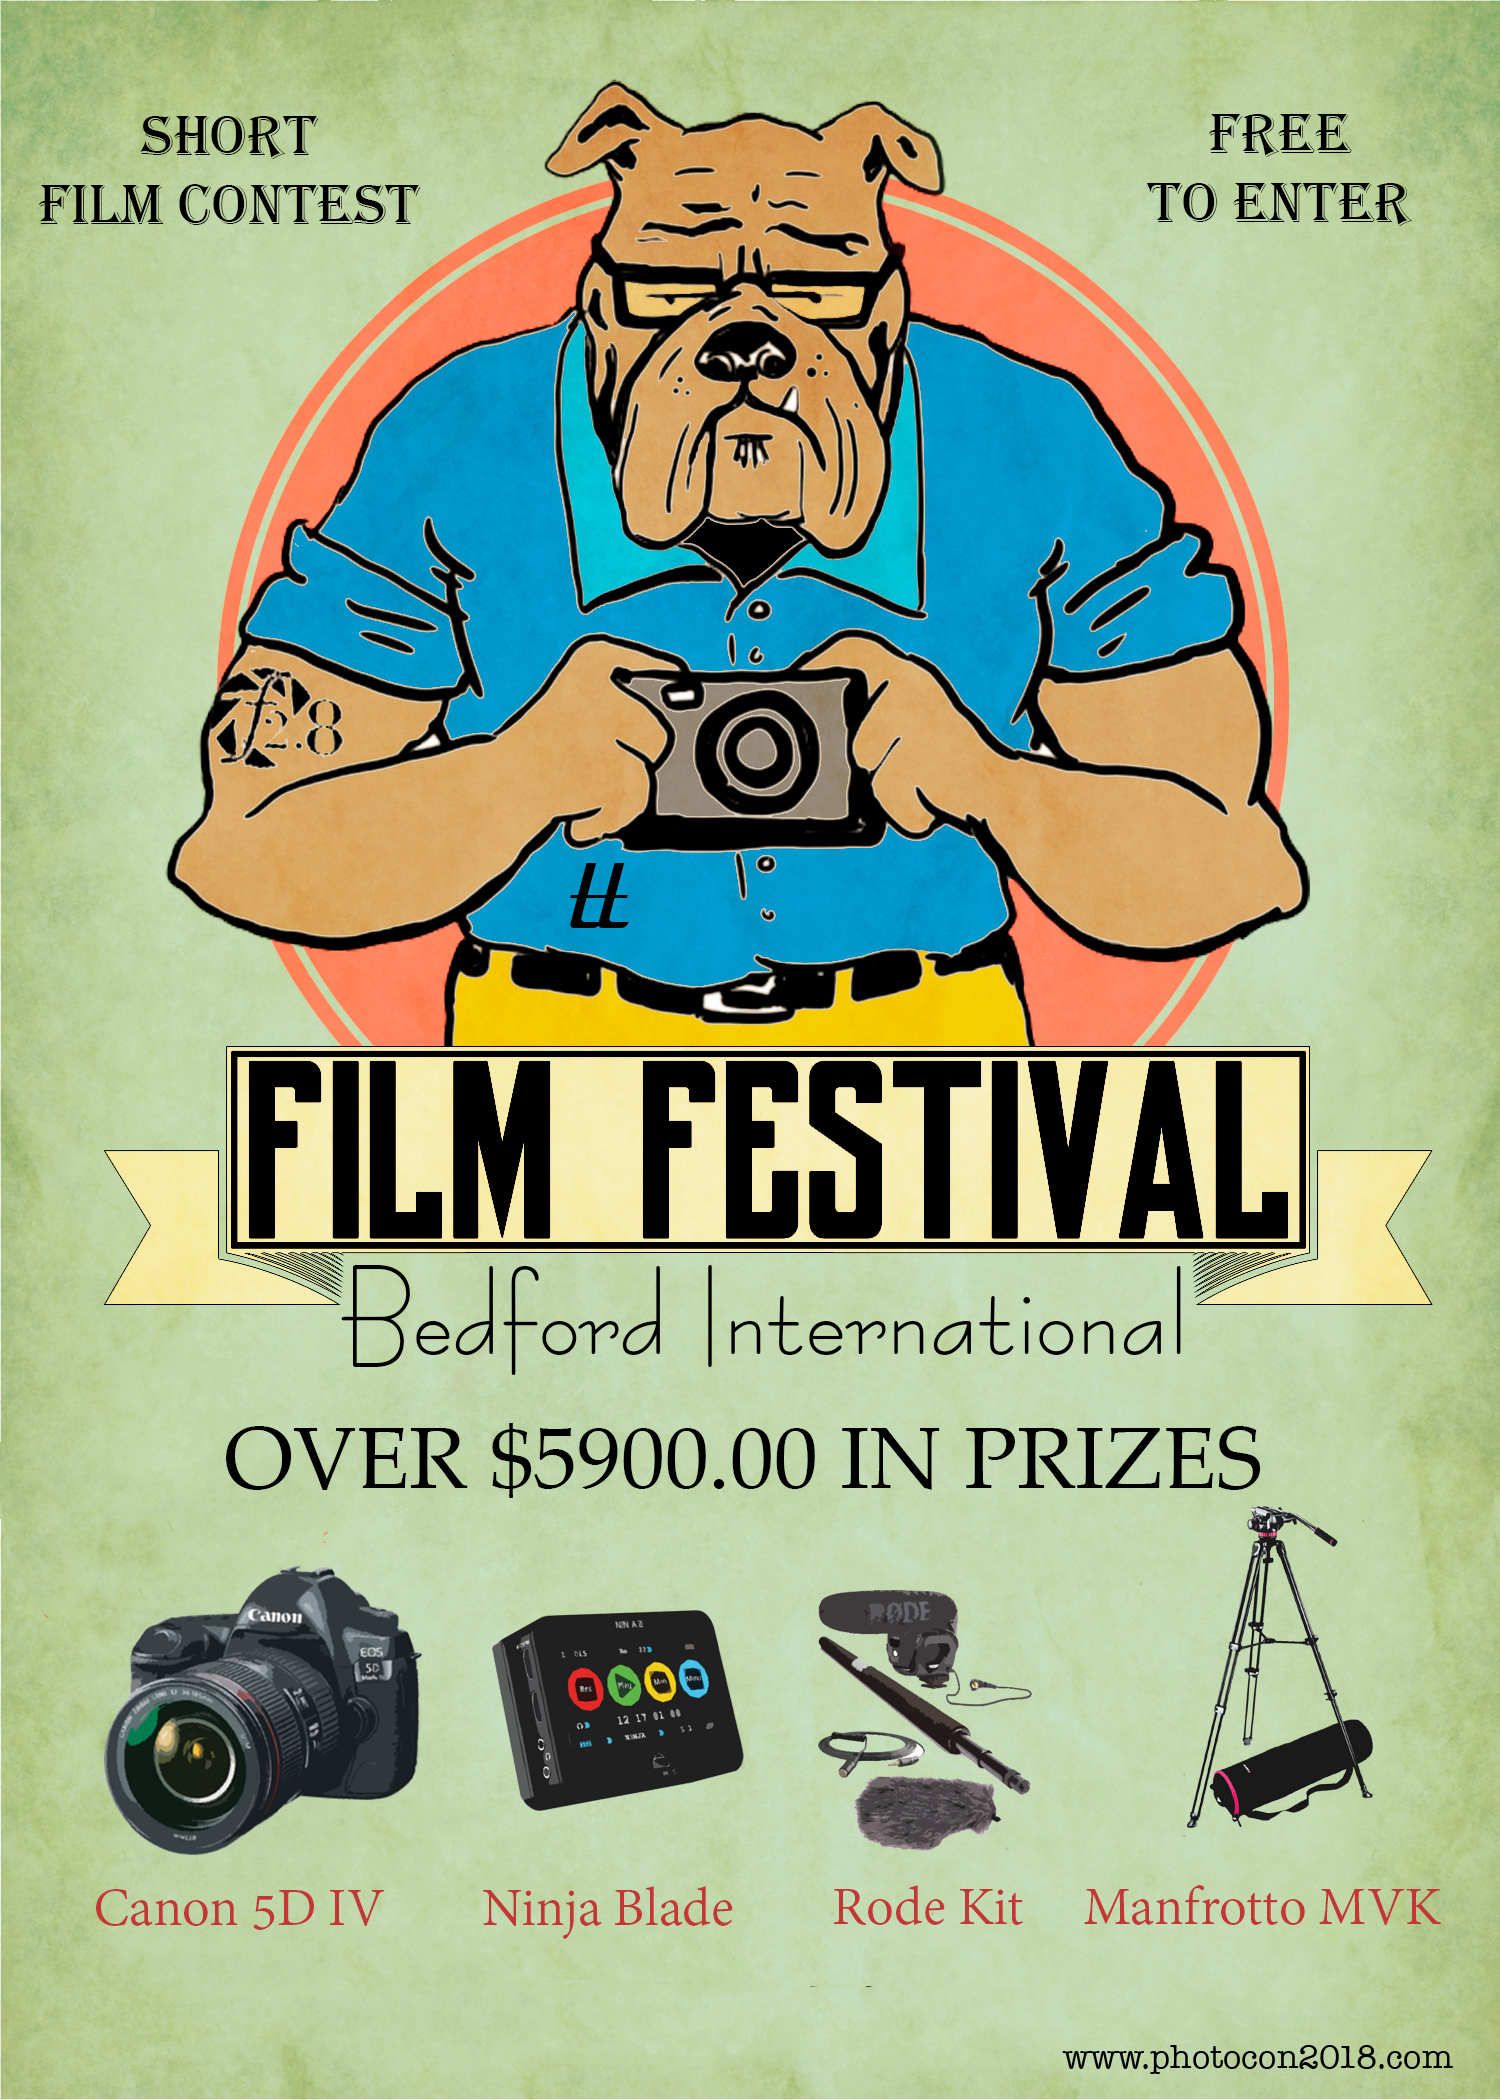 - 1. Submit an idea (any genre)for your masterpiece via Script, Storyboard or Video Interview for FREE2. Qualify as one of 15 finalists and Bedford Camera will loan you a Canon 5D MKIV 24-105 Kit and a complete Rode Mic System3. Create your masterpiece in its entirety in 96 hours (including BTS footage)4. Attend 2nd Annual Bedford international Film Festival October 27, 2018 at the Tower Hotel OKC5. Grand Prize Winner receives $5900.00 in Prizes including Canon 5D MK IV, Rode Microphone Kit, Atomos Ninja Blade and a Manfrotto Tripod.